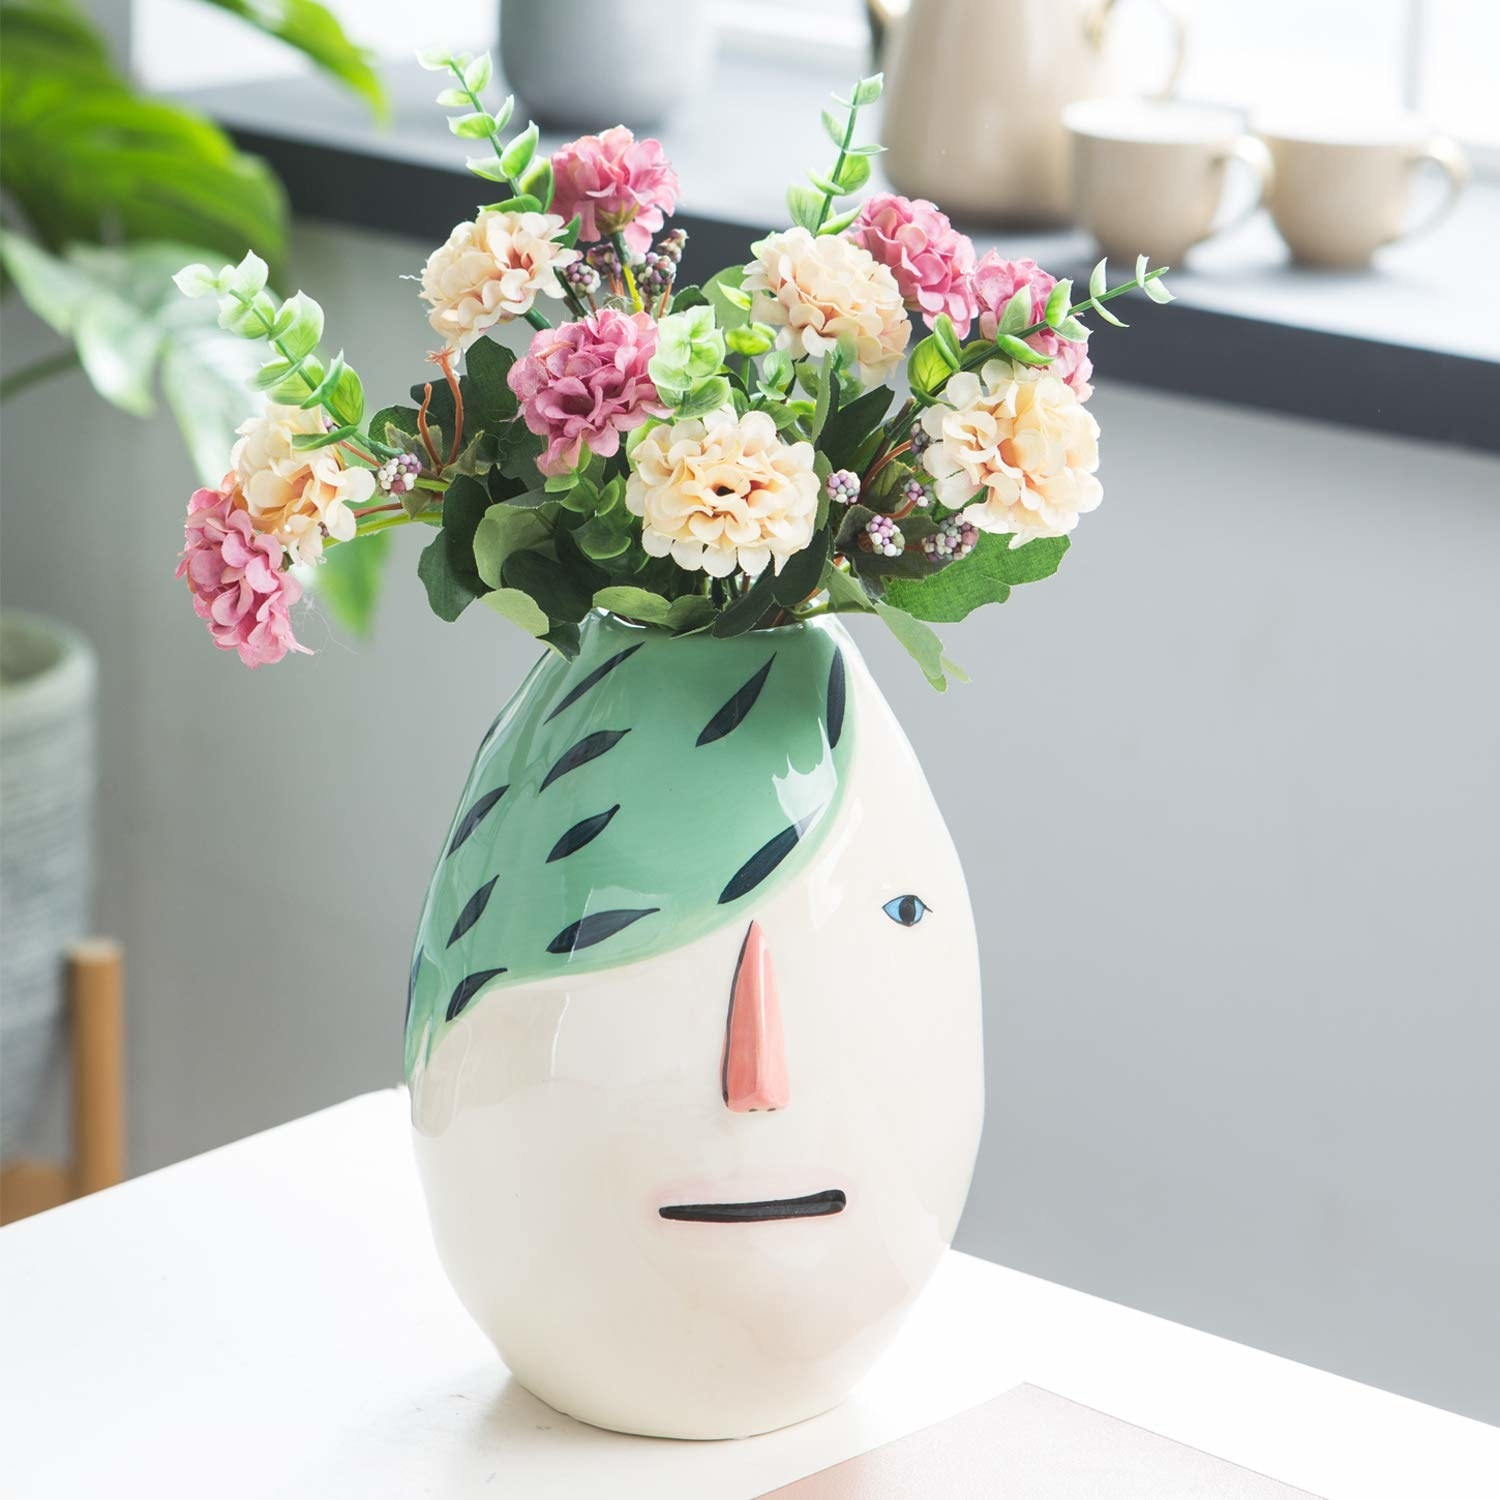 oval vase with face with green hair covering one eye